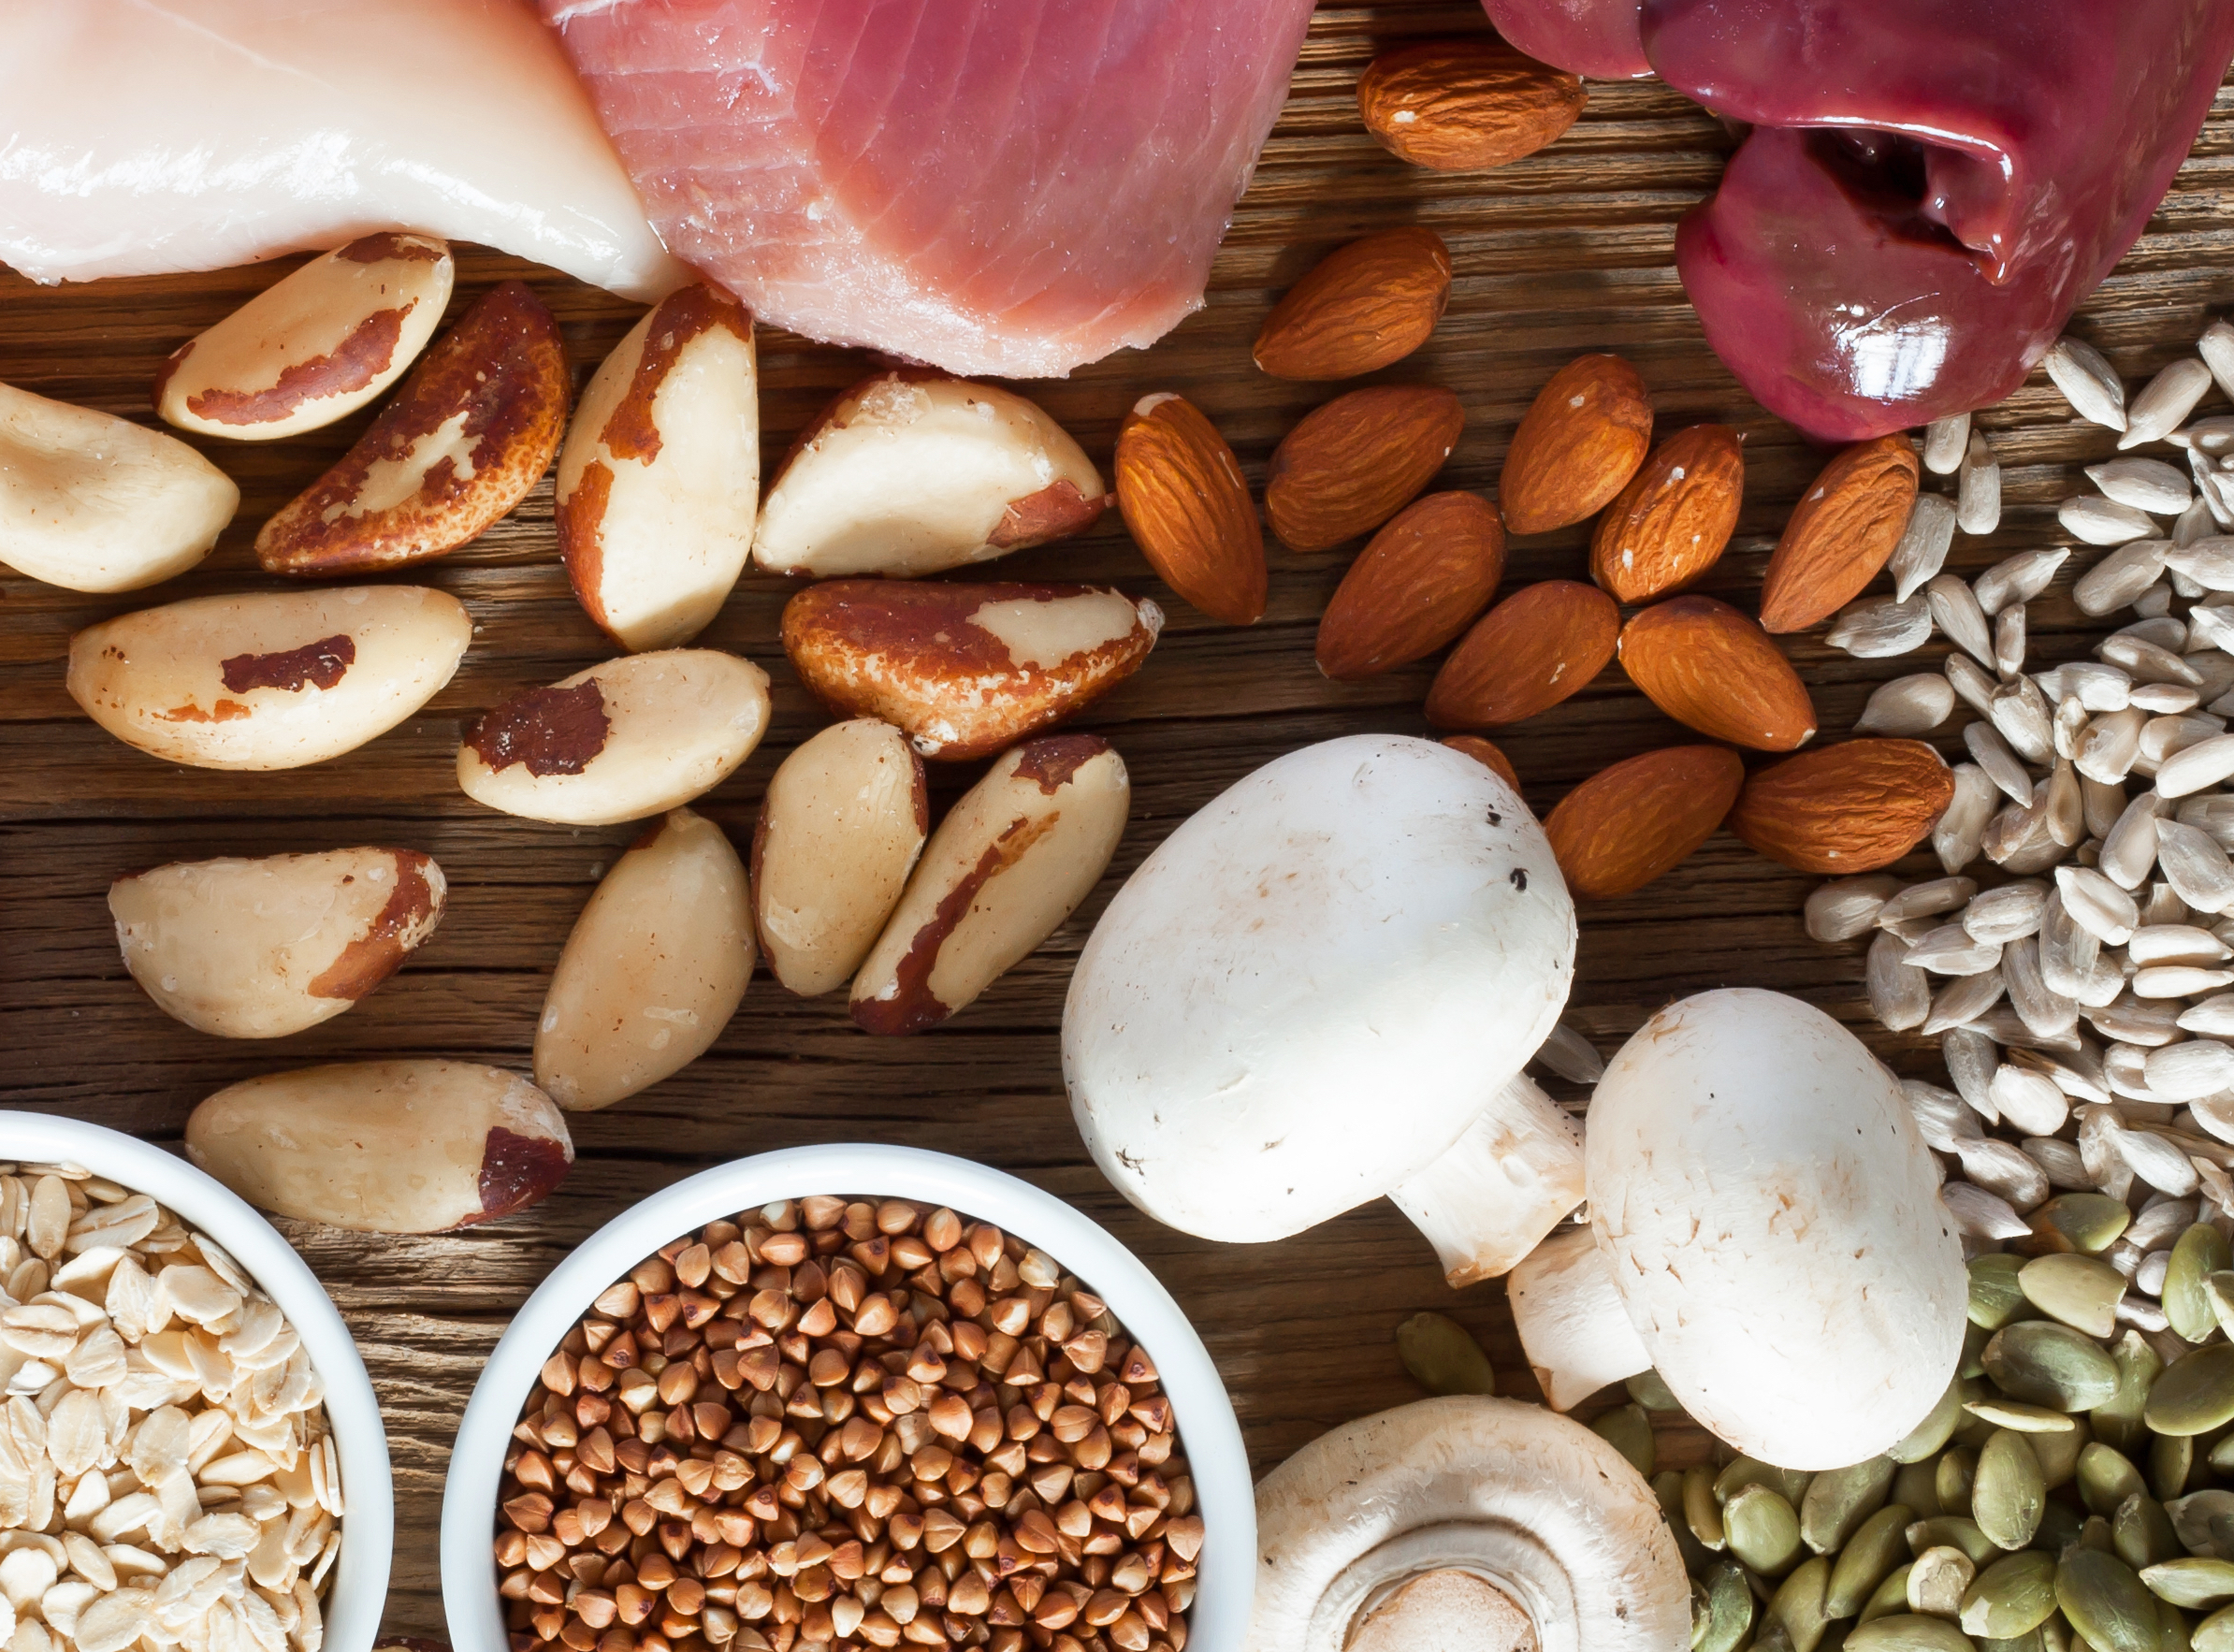 Foods high in vitamin b12 or pantothenic acid, including mushrooms, nuts (such as almonds, brazil nuts) pumpkin seeds, sunflower seeds, liver, poultry, fortified grains